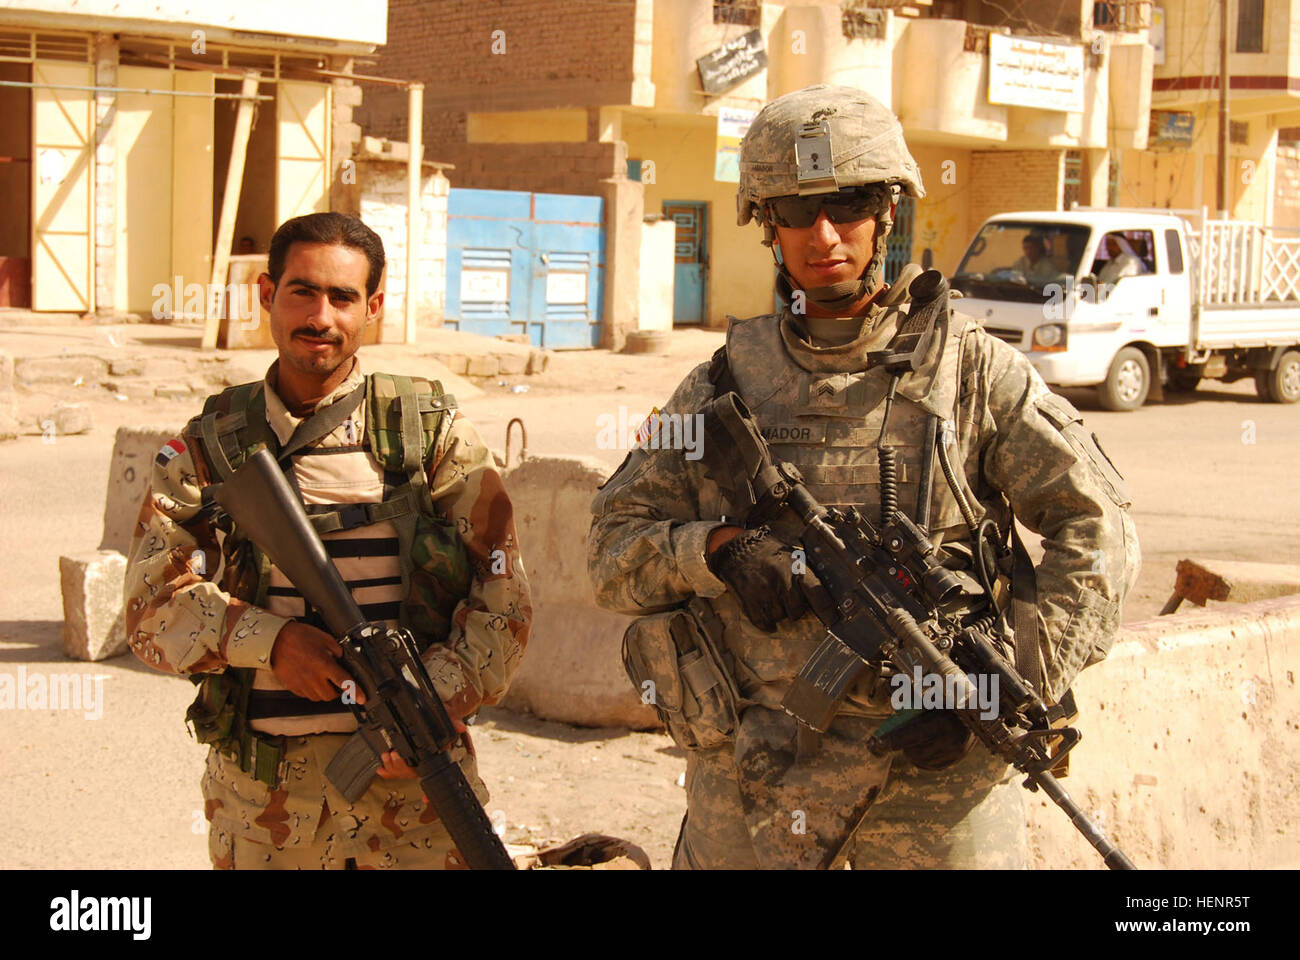 Sgt. Eugenio Amador, a native of Miami, stands with an Iraqi army soldier at a joint checkpoint at Nassir Wa Salam, - Stock Image